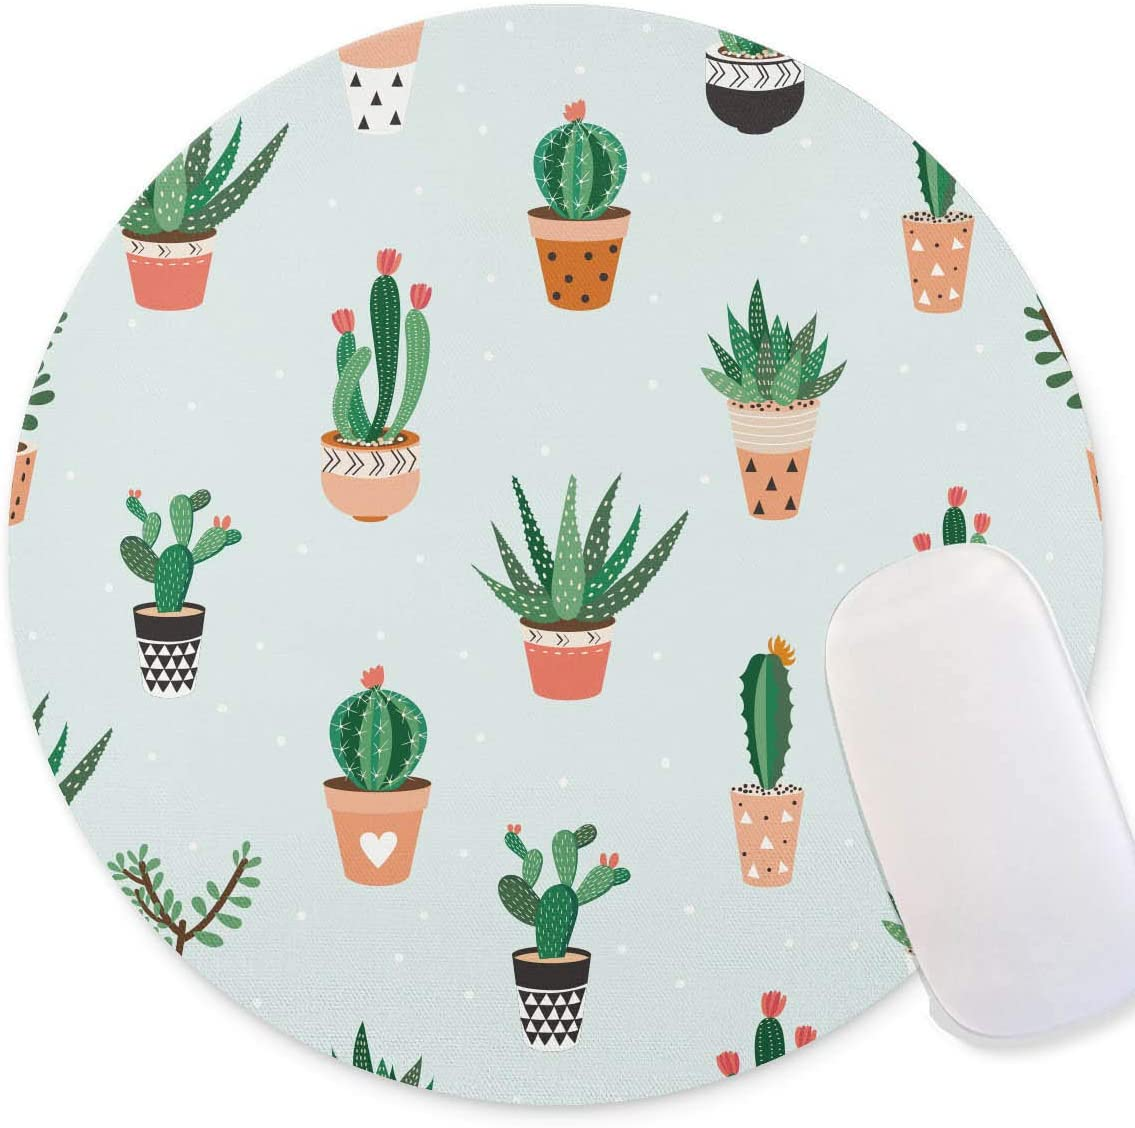 Timing&weng Seamless Pattern with Cacti and Succulents Round mosue pad Non-Slip Mouse pad Gaming Mouse pad